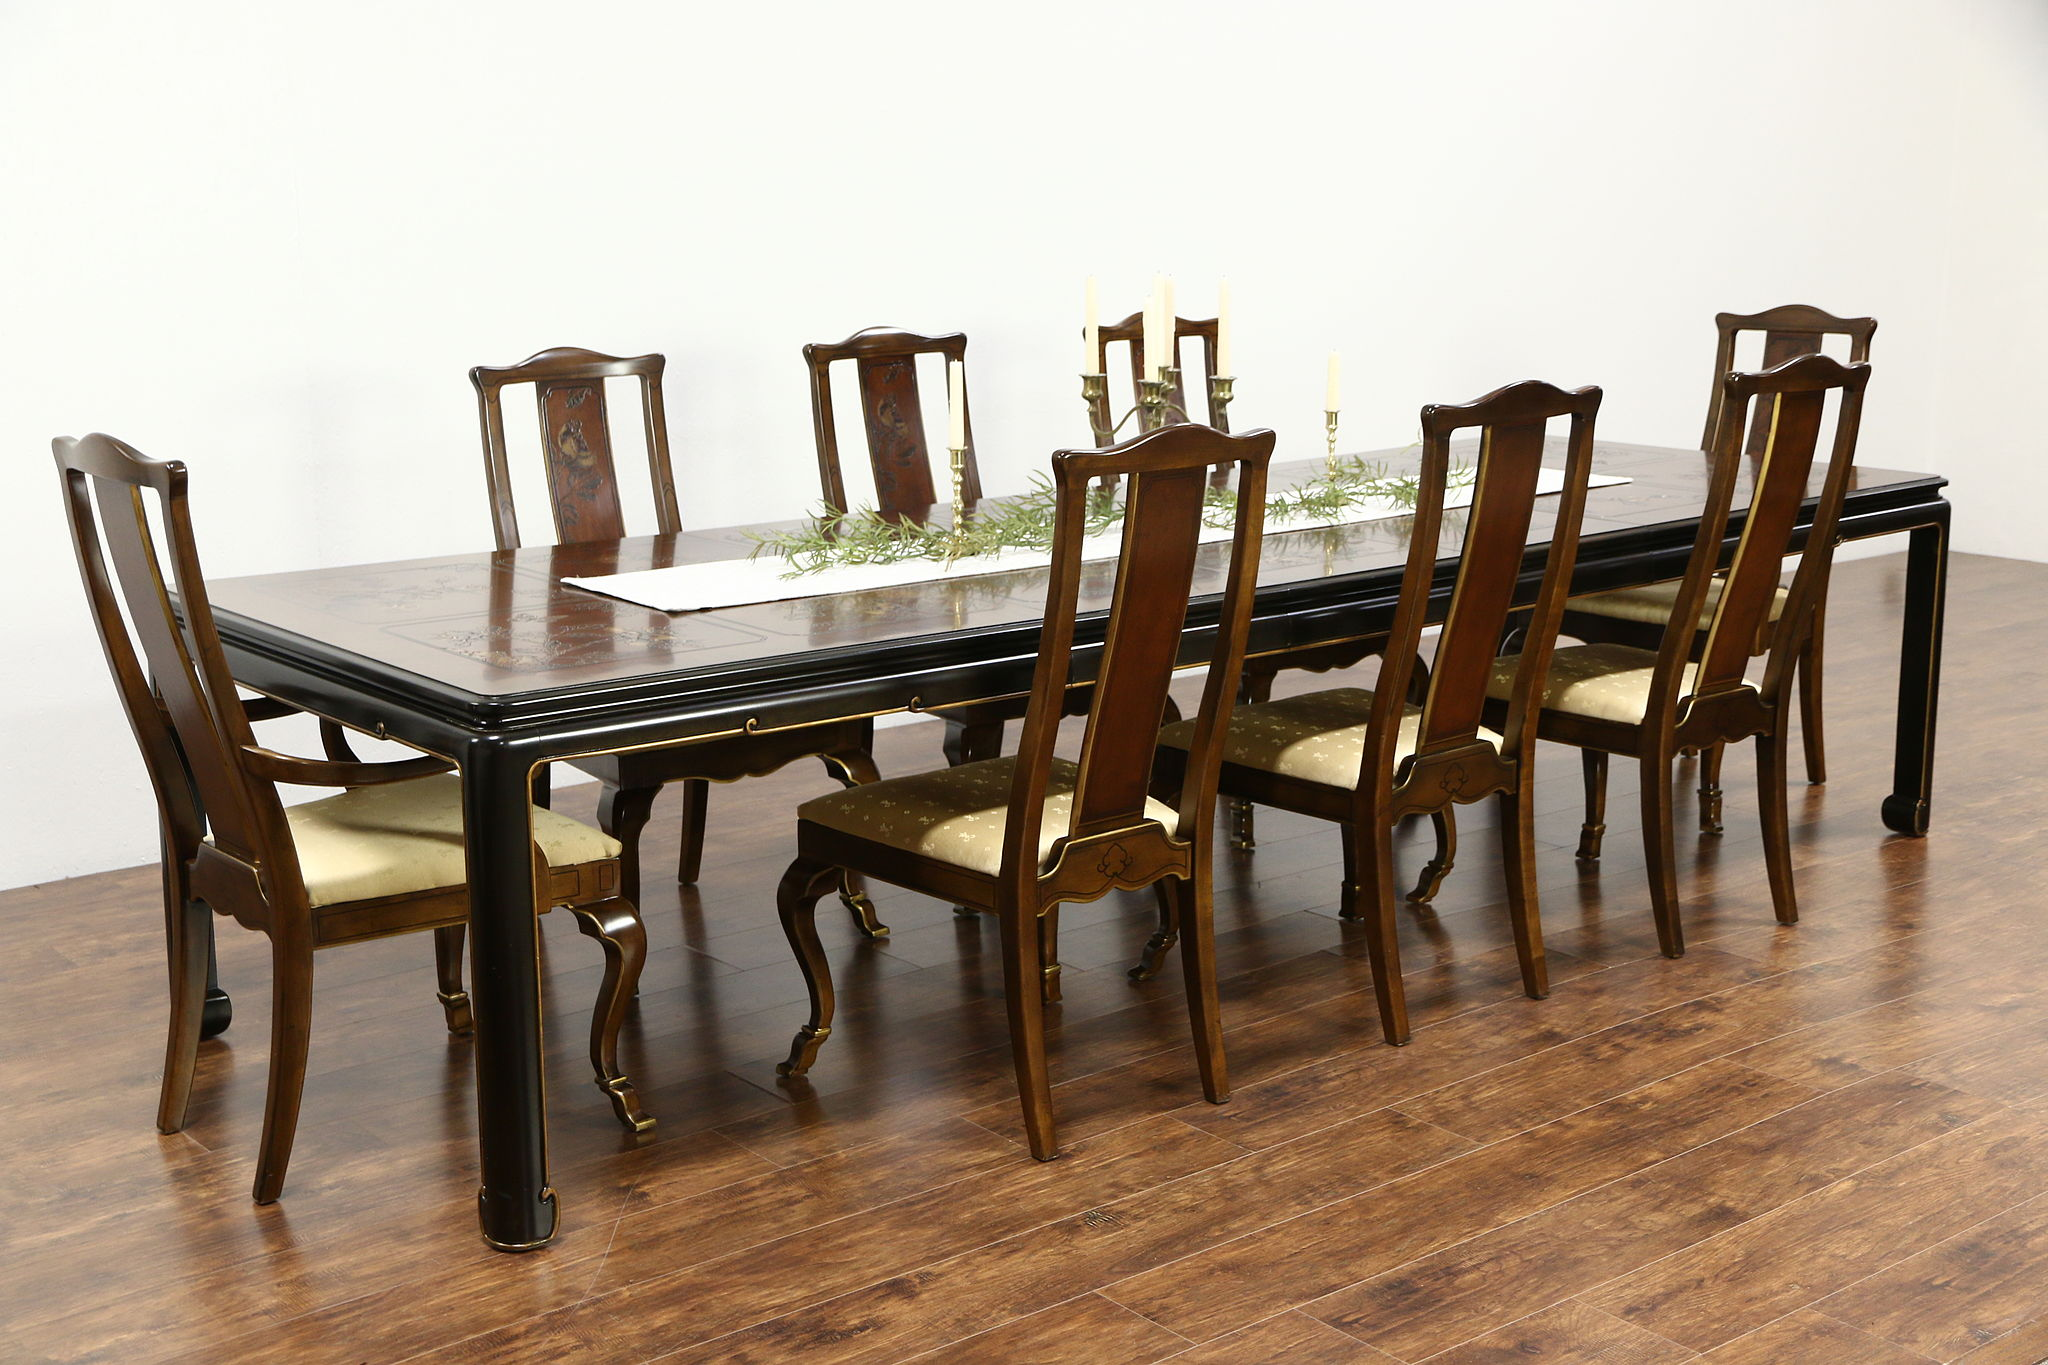 Drexel Heritage Connoisseur Chinese Motif Vintage Dining Set Table 8 Chairs & SOLD - Drexel Heritage Connoisseur Chinese Motif Vintage Dining Set ...